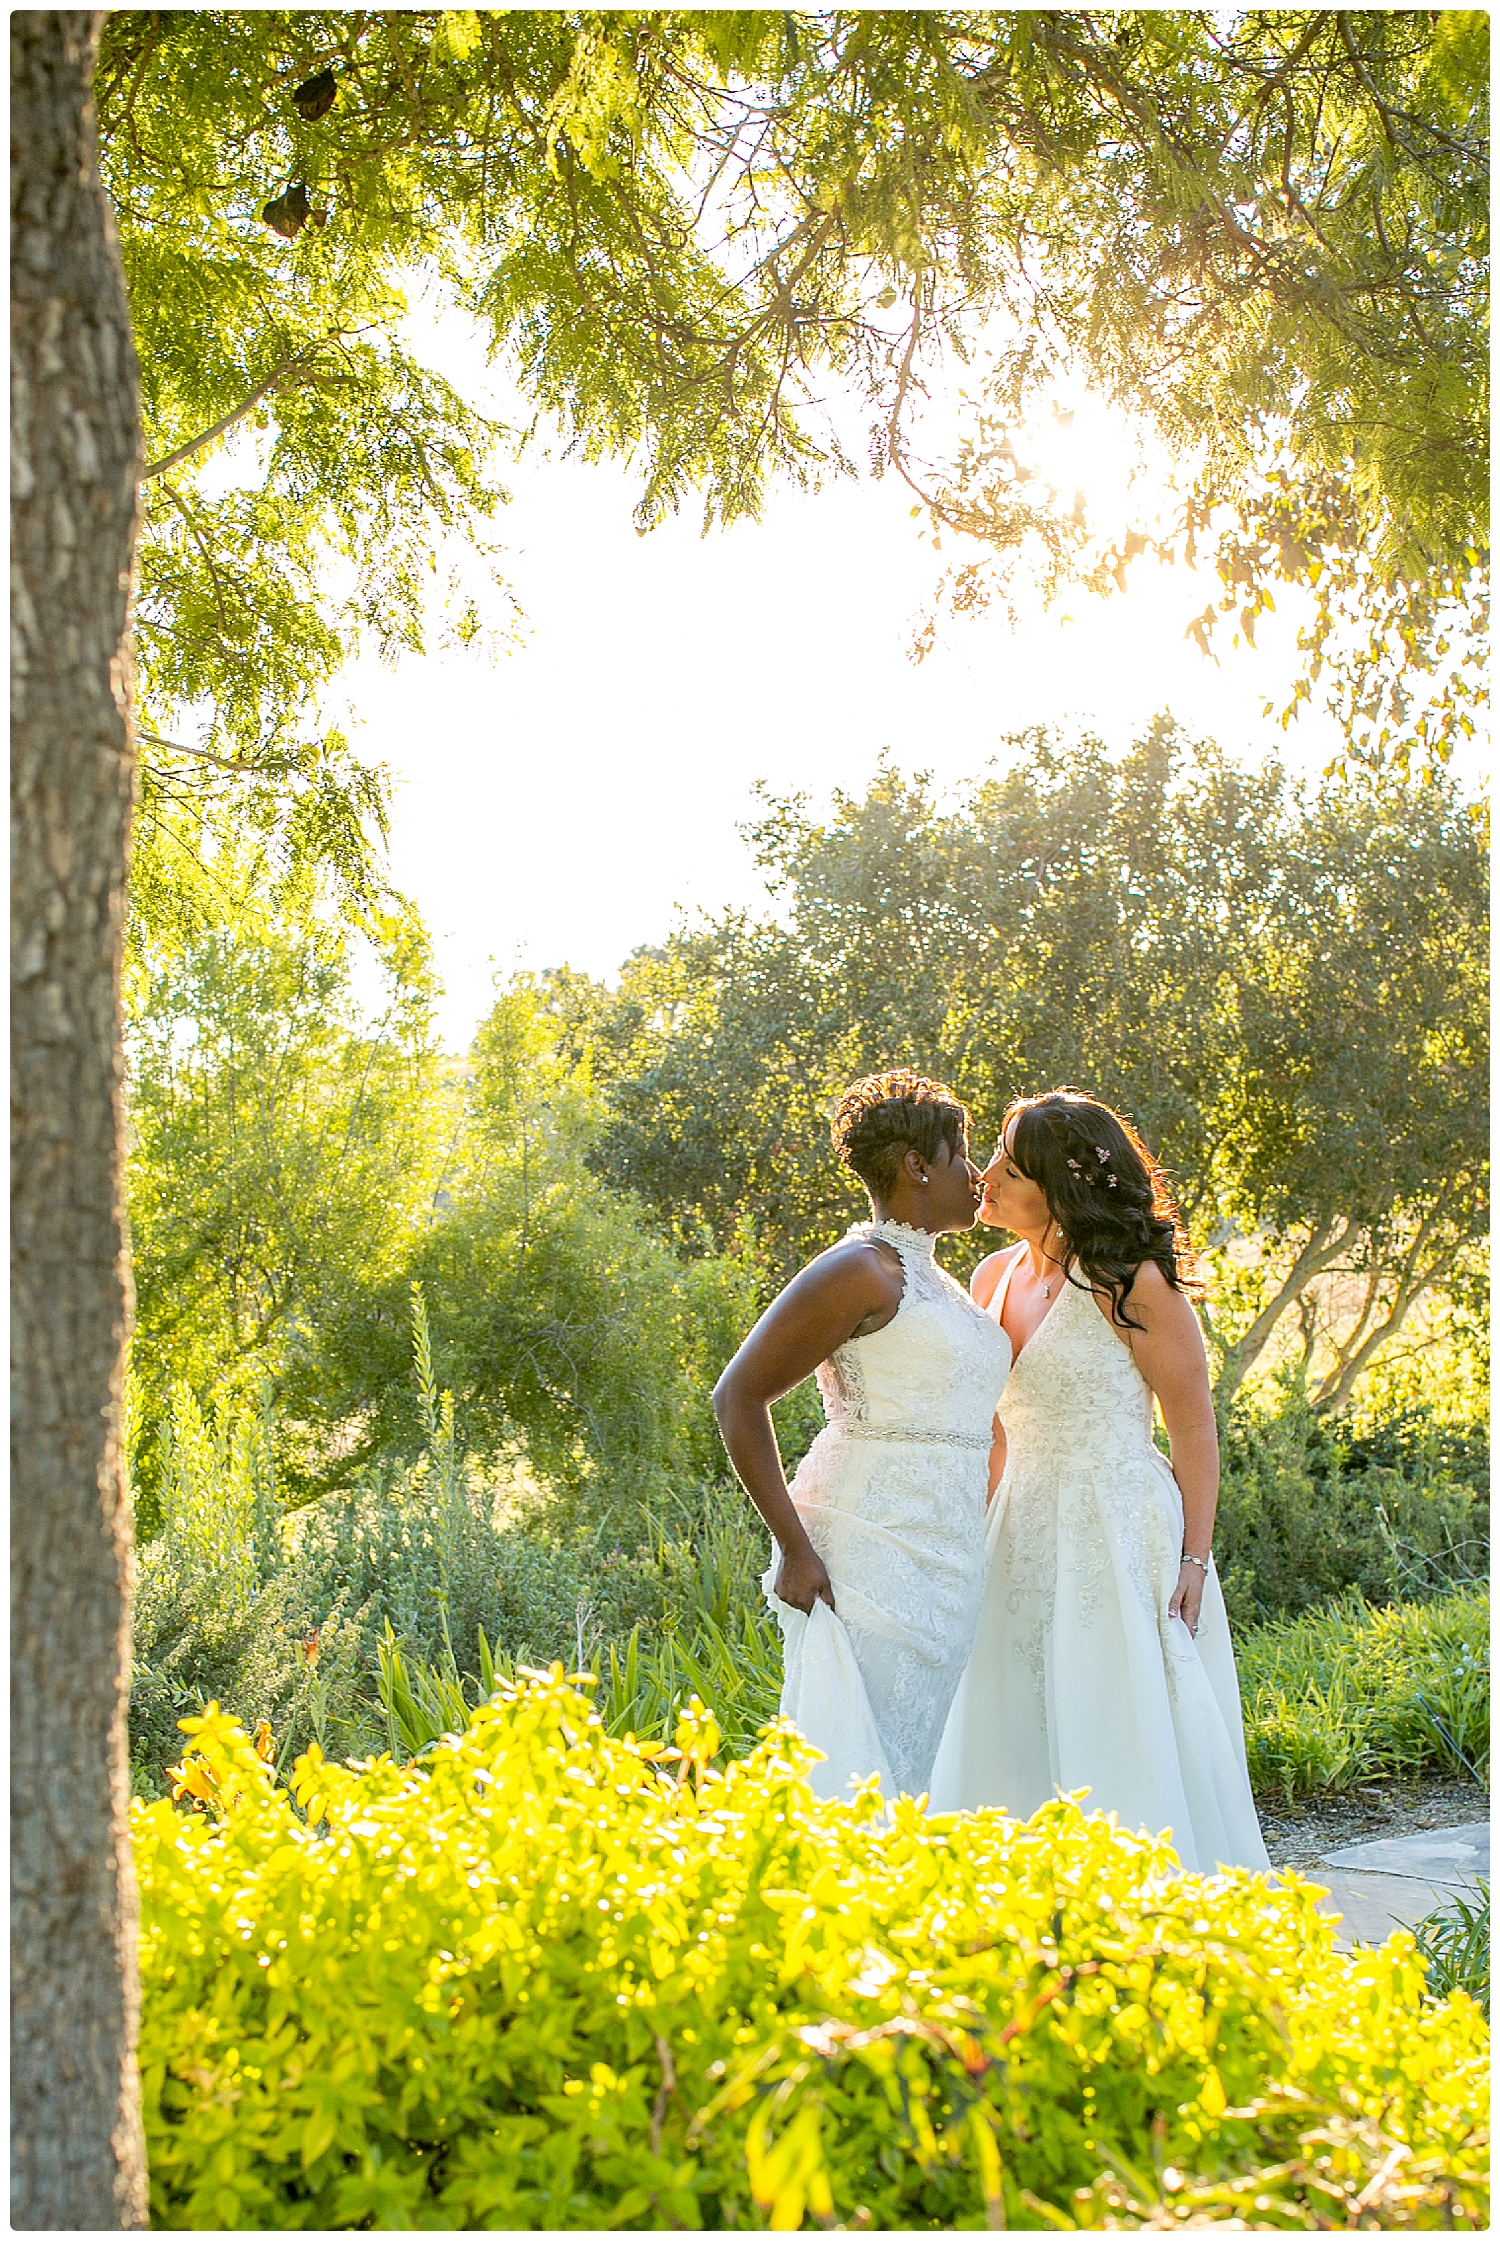 New Years Eve intimate wedding_Renoda Campbell Photography_LGBT wedding_0062.jpg